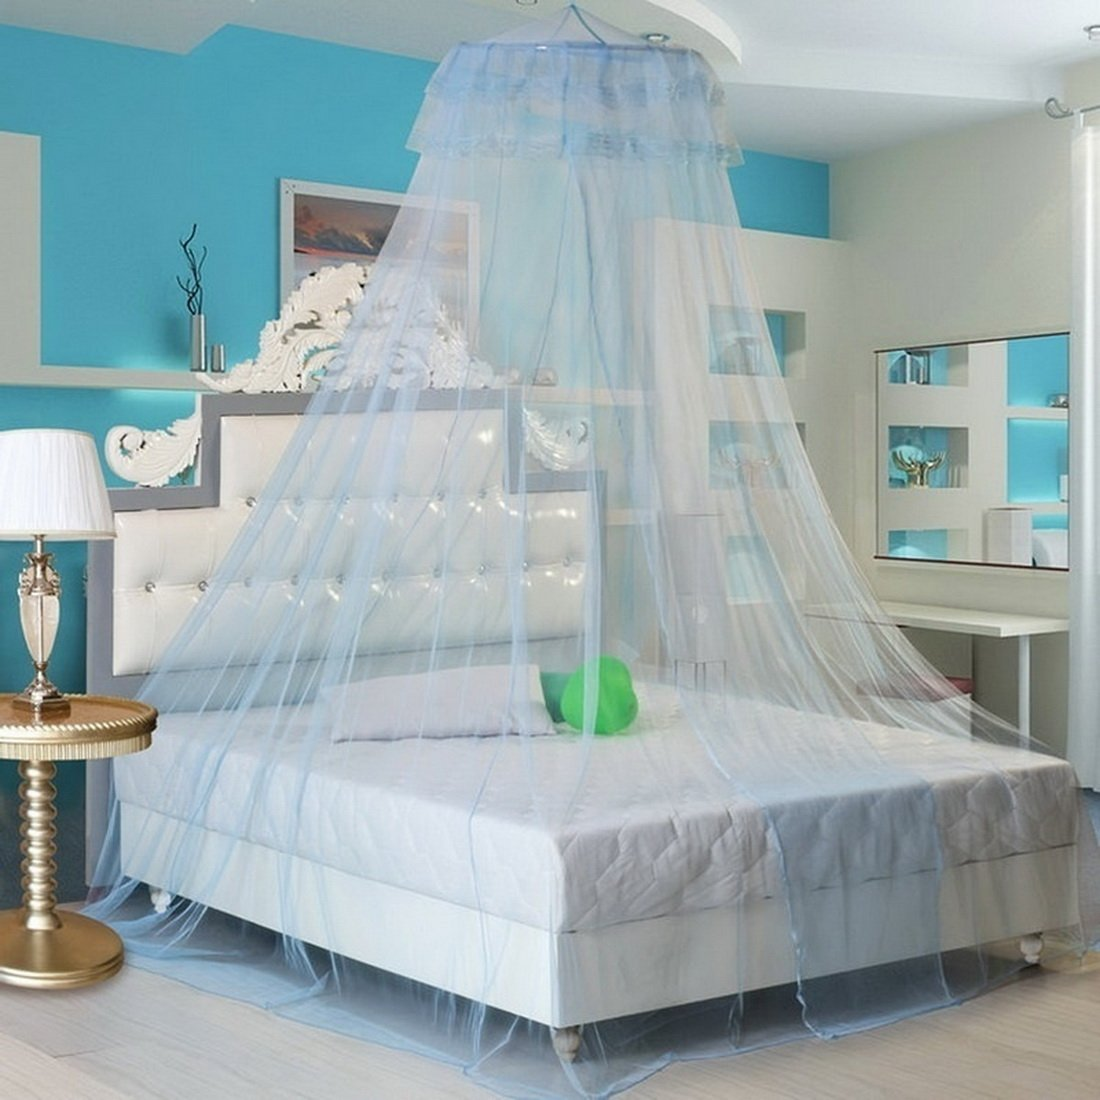 Hoomall Mesh Hanging Mosquito Net Tent Canopy Curtains Netting for King Queen Bed Light Blue Ourstory